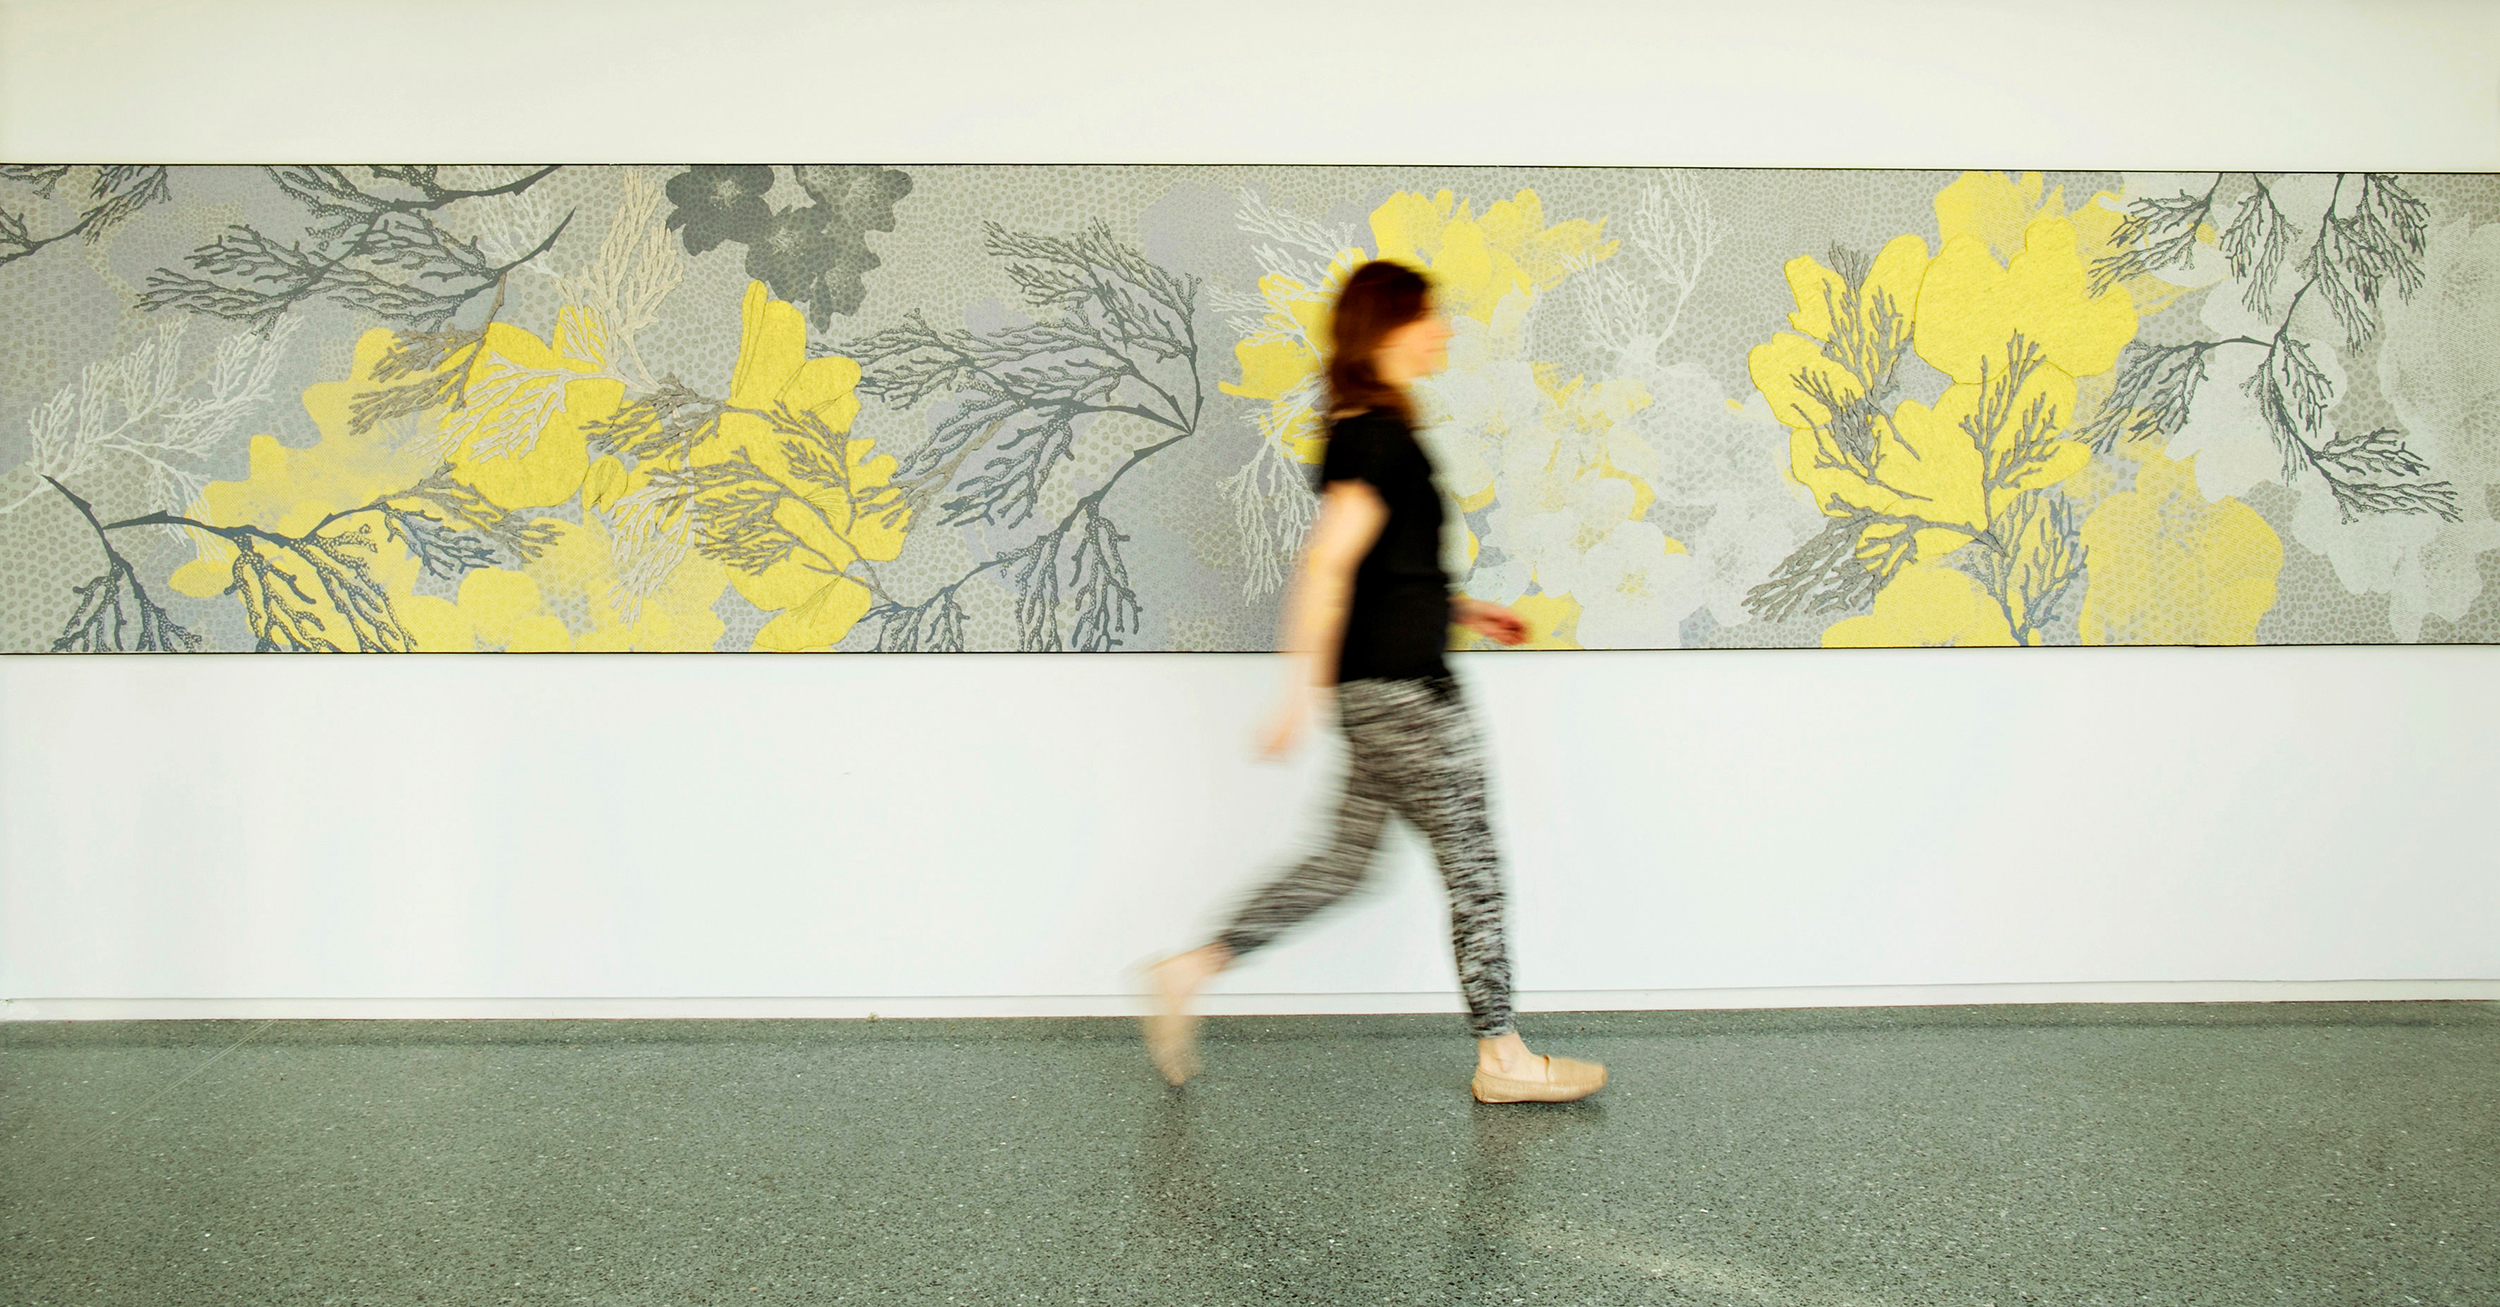 CUSTOM MURAL FOR YELLOW MAGNOLIA CAFÉ AT THE BROOKLYN BOTANIC GARDEN, IN COLLABORATION WITH ROCKWELL GROUP